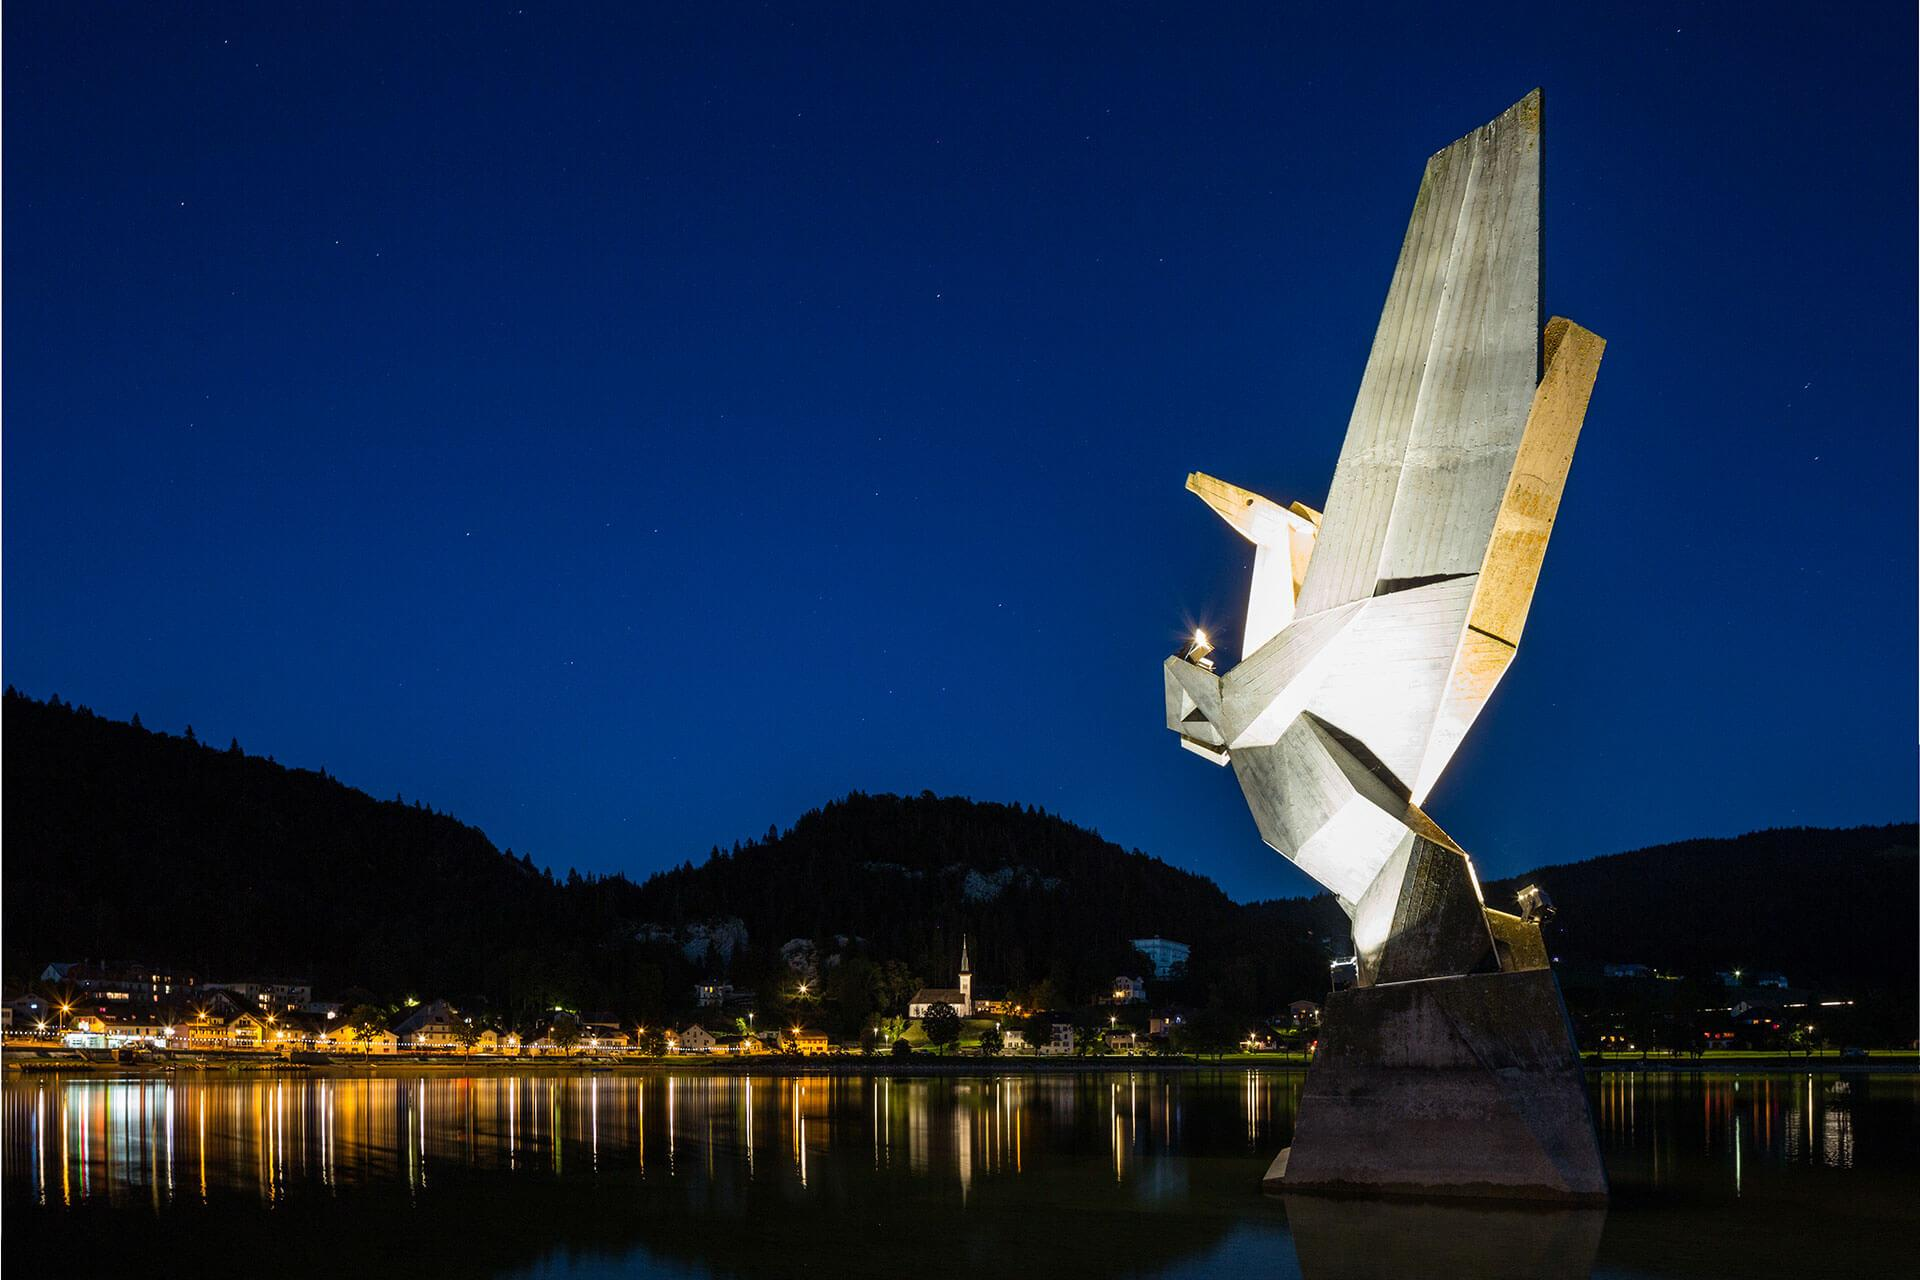 Schréder floodlights provide uniform illumination to enhance this iconic statue for locals